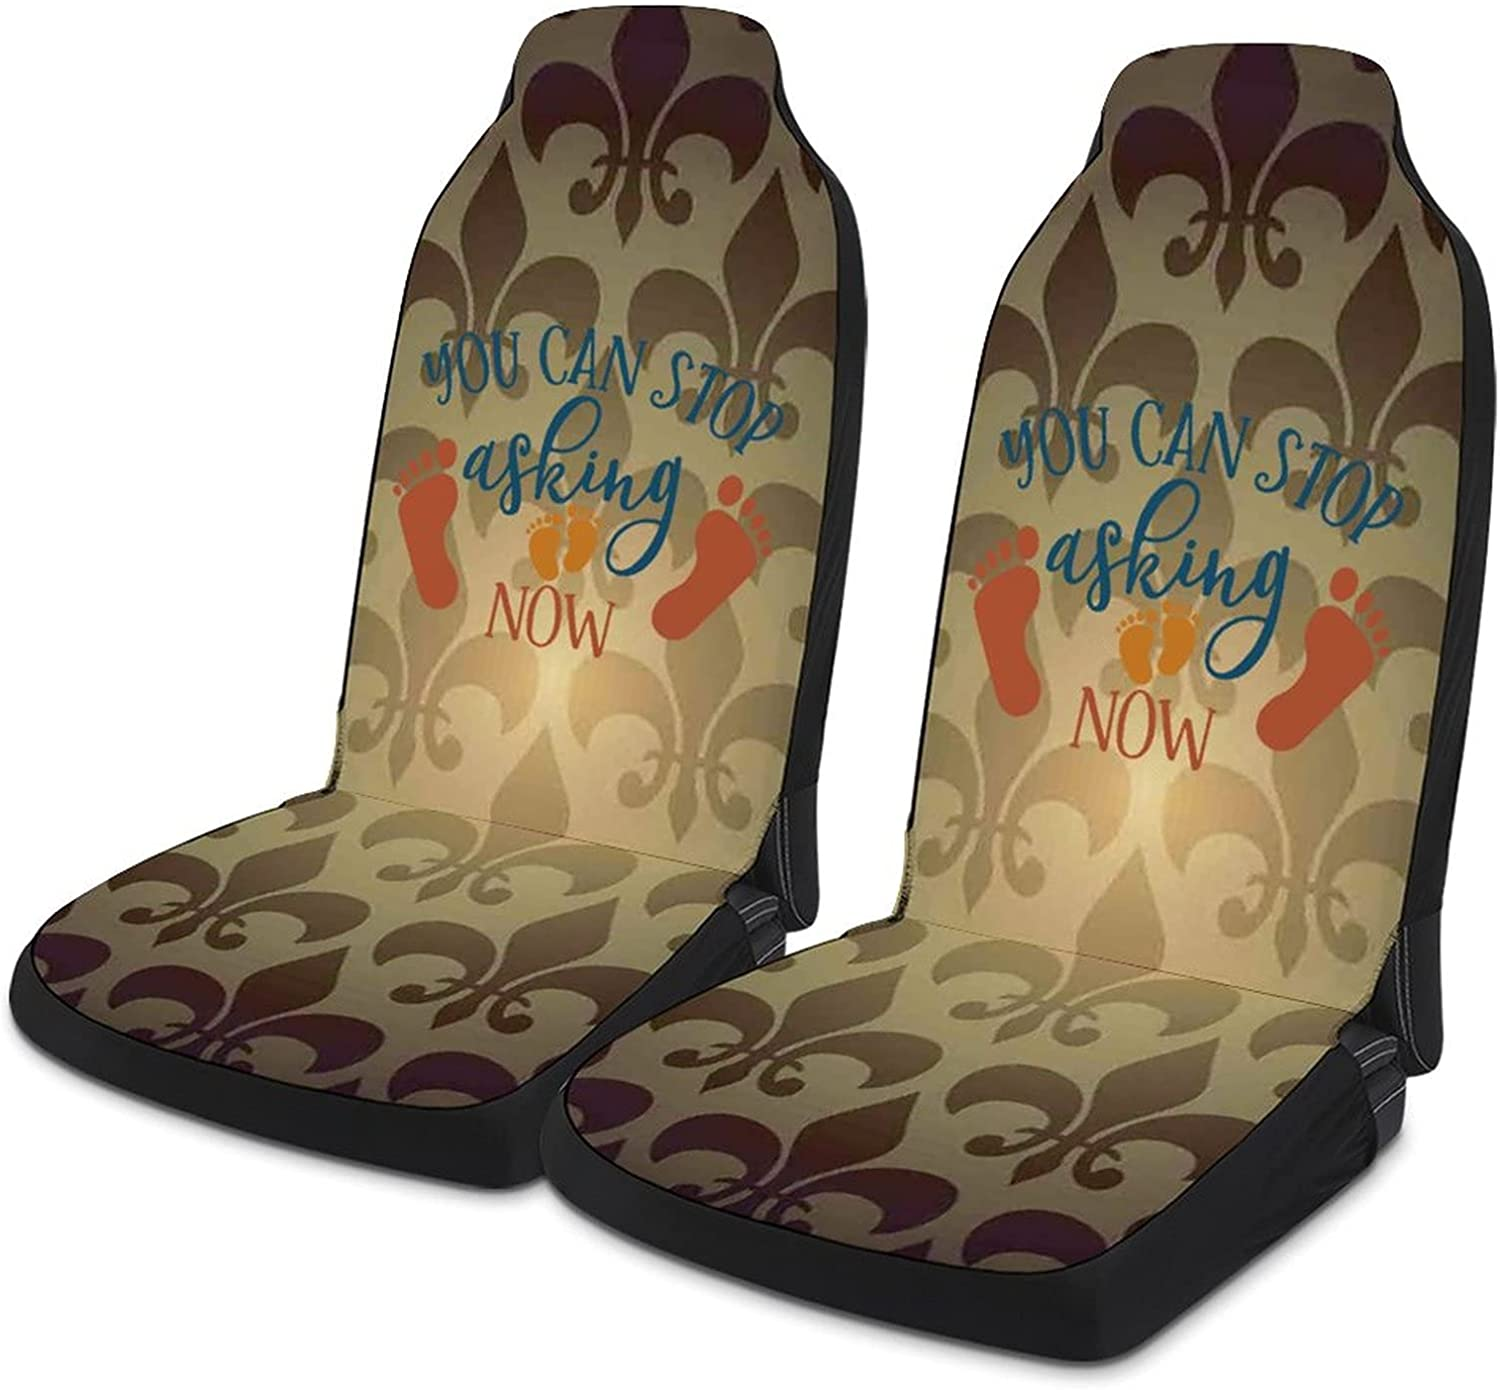 VinMea Car Seat Covers Set of 2 Stop Asking Acc Auto Can You Max 73% Limited time cheap sale OFF Now